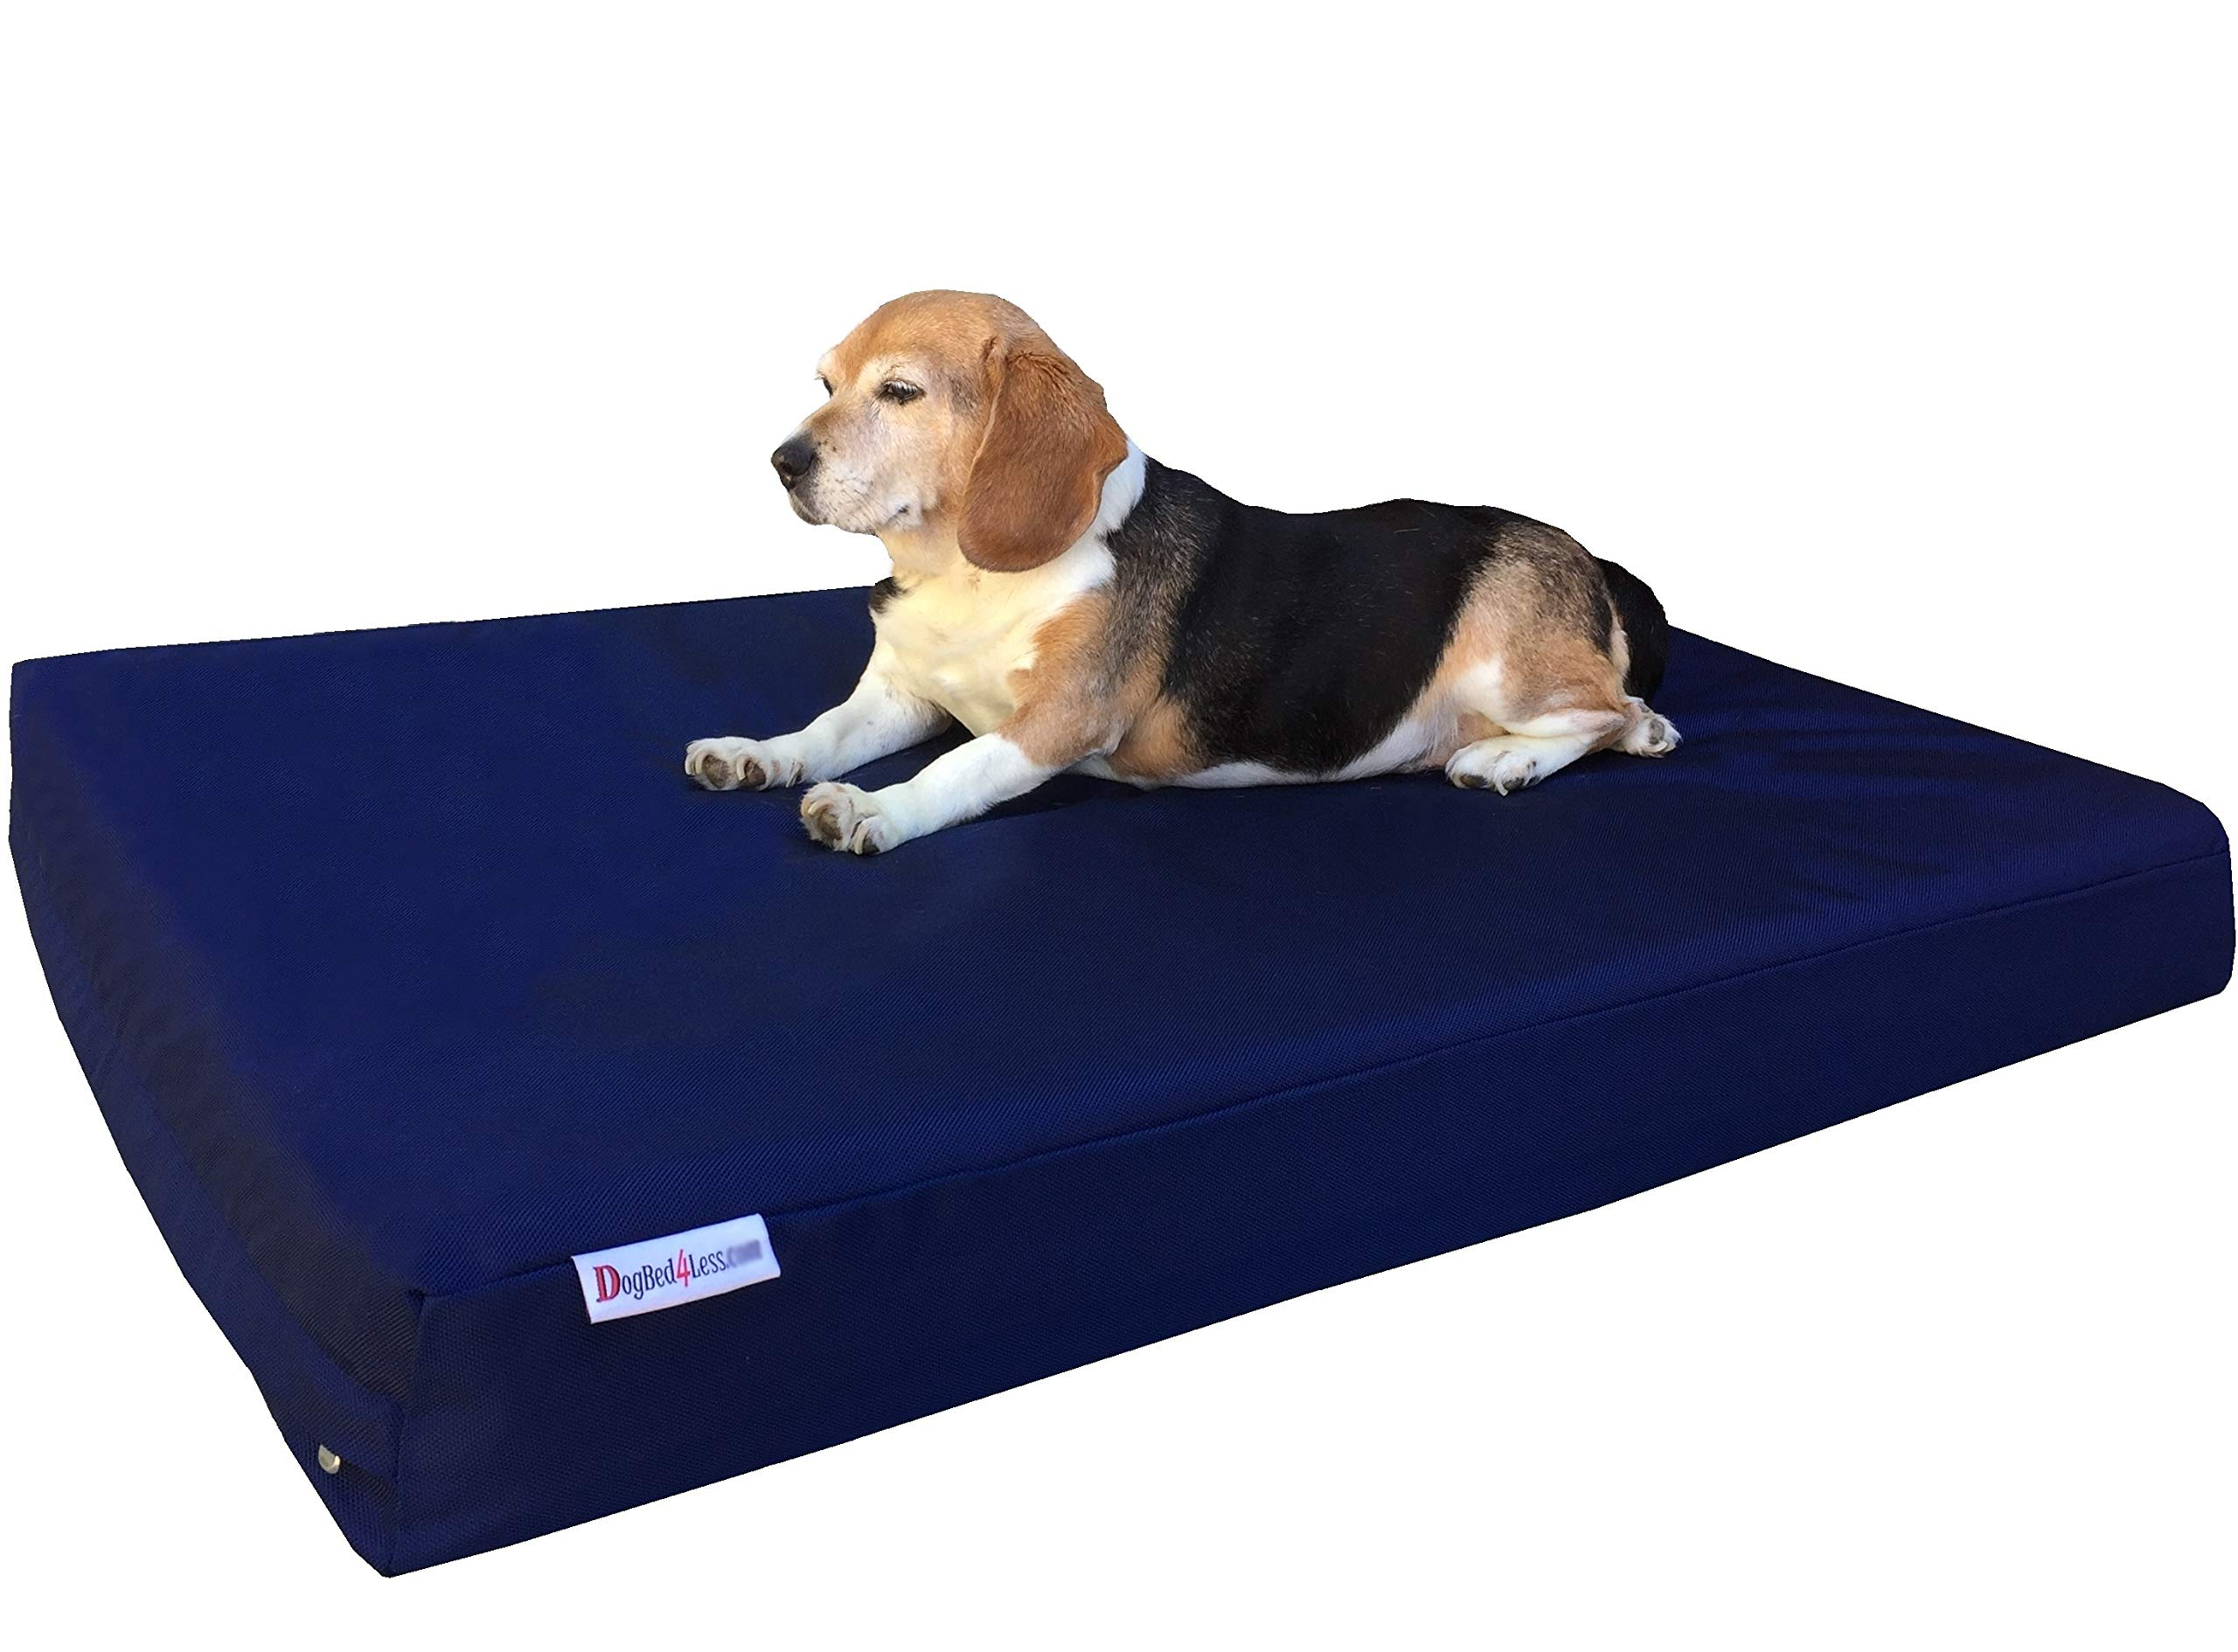 Dogbed4less Durable Large Gel Memory Foam Dog Bed with 1680 Nylon Blue Cover and Waterproof Liner with Bonus Cover, 41X27X4 Inch (Fit 42X28 Crate)